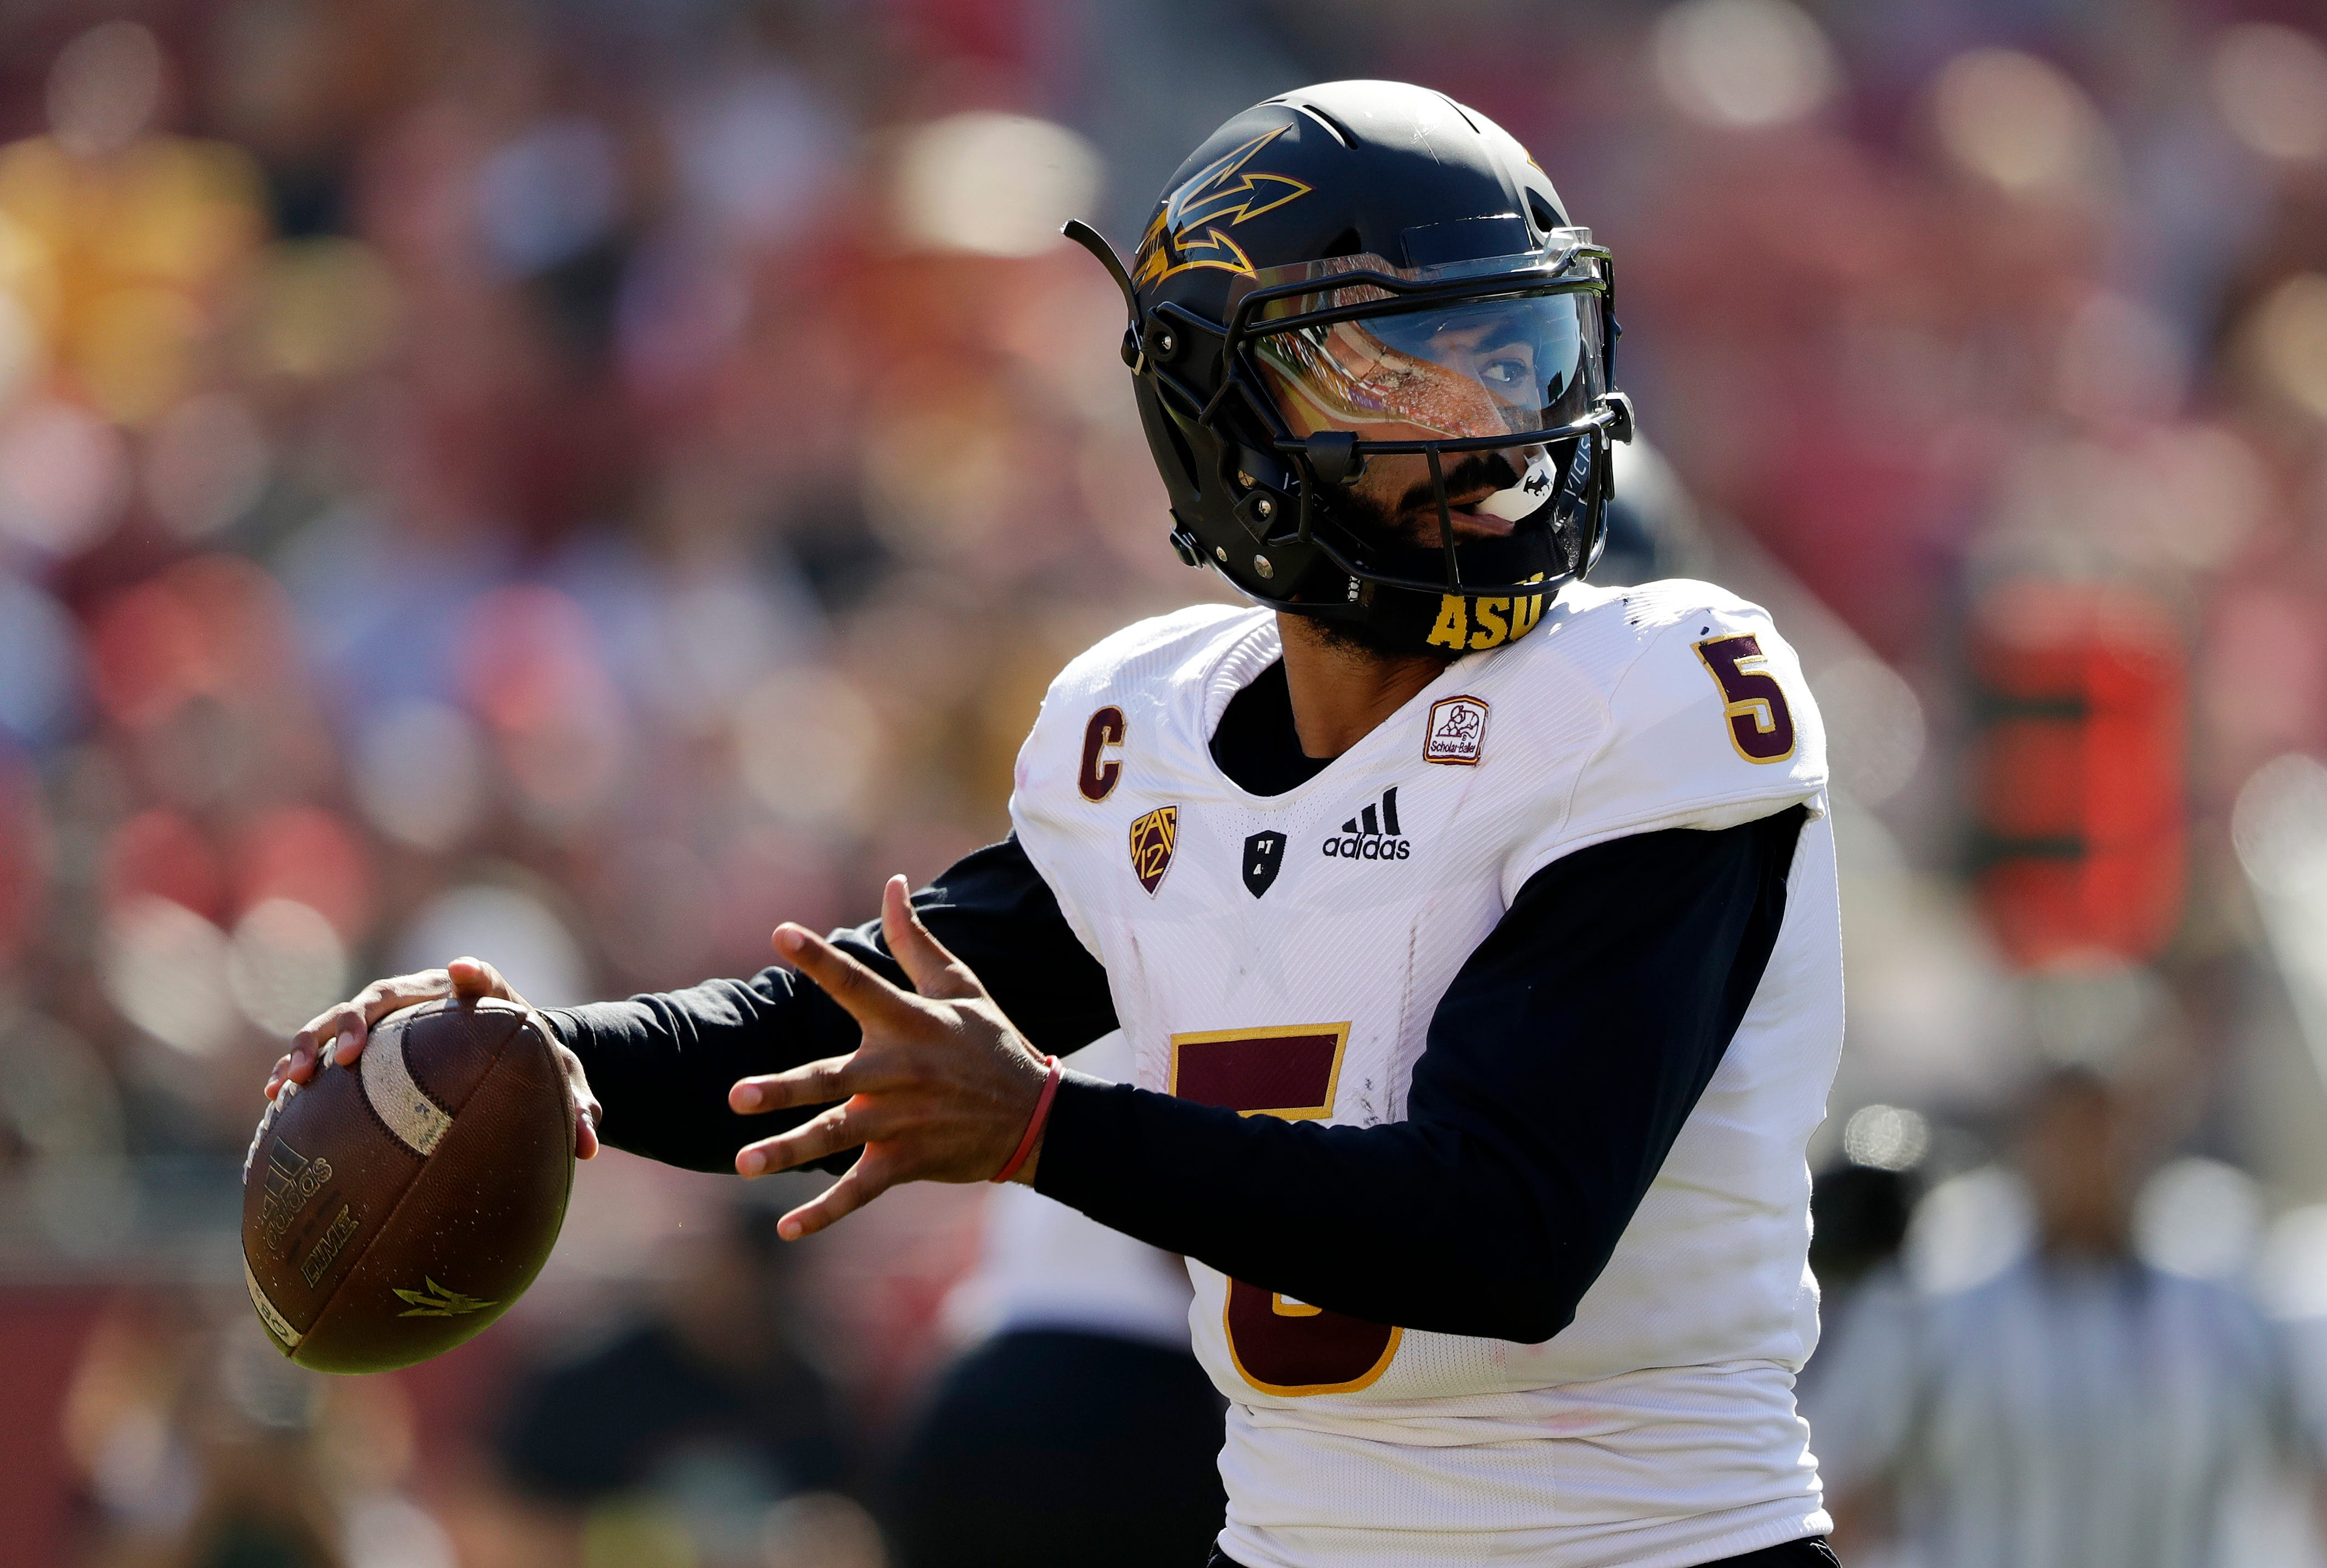 23153a0a6 LOS ANGELES (AP) — N Keal Harry scored on a 92-yard punt return and Arizona  State defeated Southern California 38-35 on Saturday.